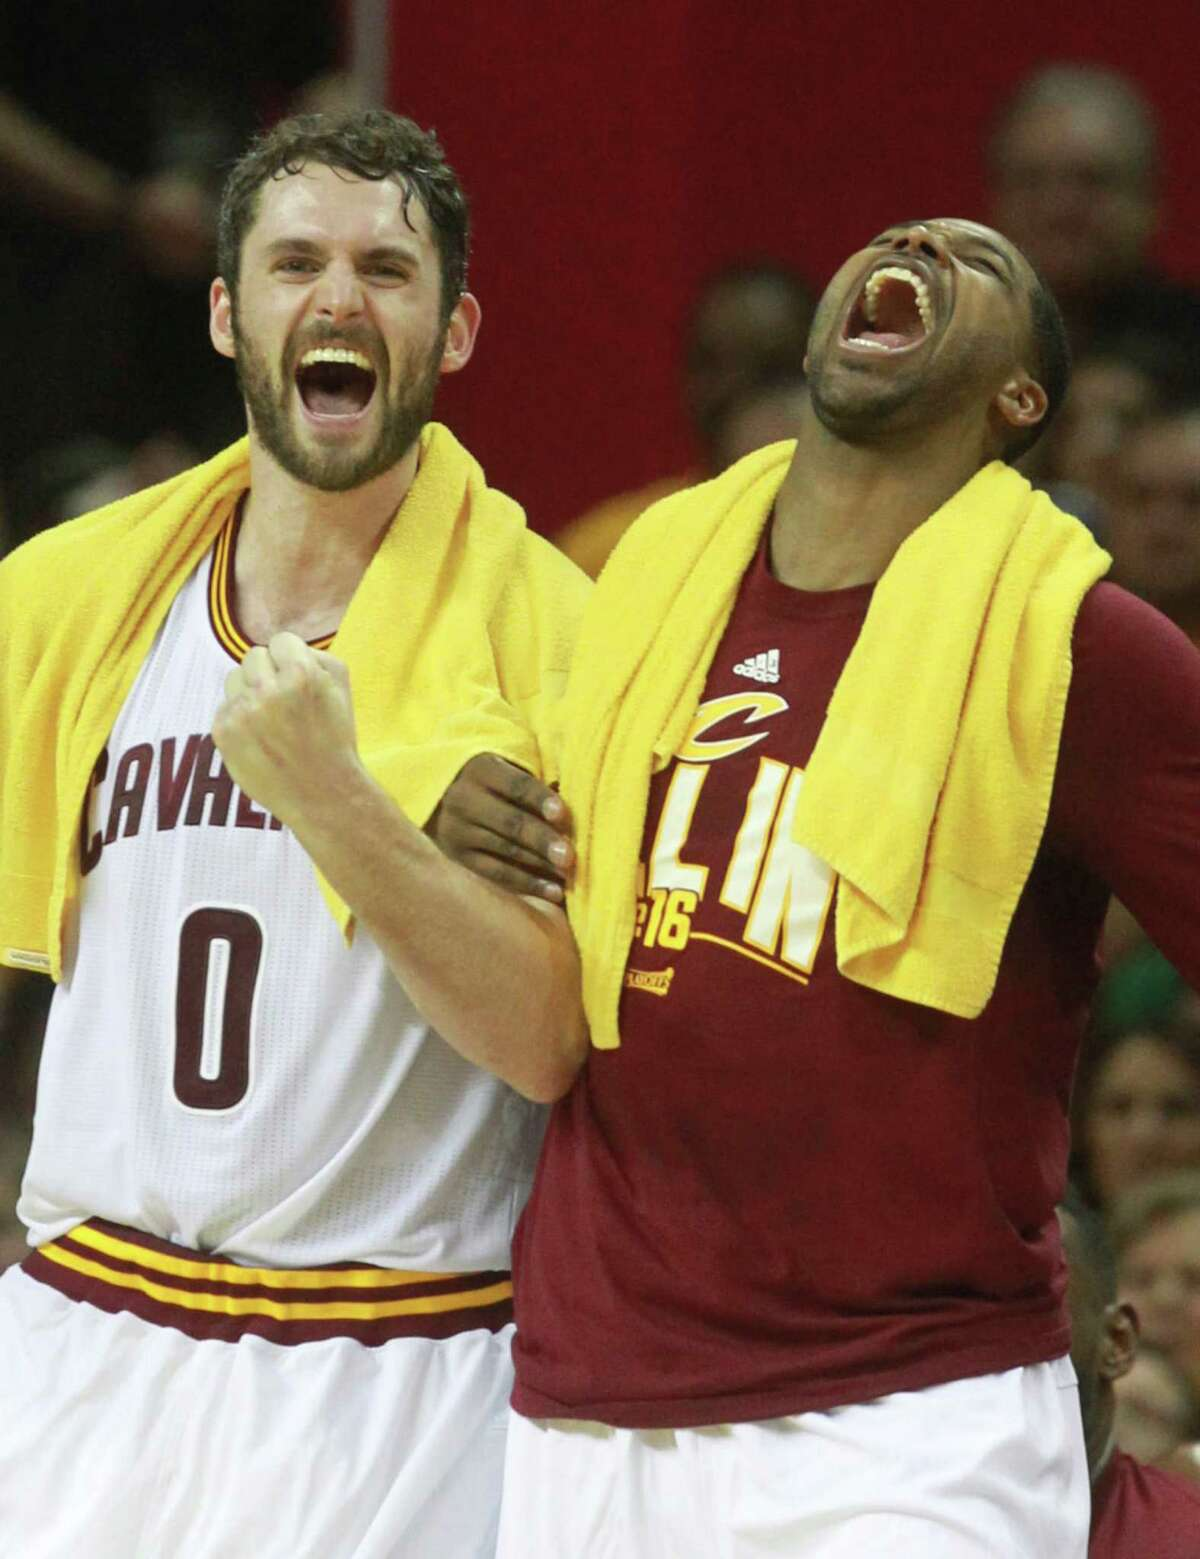 The Cleveland Cavaliers' Kevin Love (0) and Tristan Thompson celebrate on the bench after a third-quarter dunk by Richard Jefferson against the Atlanta Hawks in Game 2 of the Eastern Conference semifinals on Wednesday, May 4, 2016, in Cleveland, Ohio, at Quicken Loans Arena. The Cavs won, 123-98, to lead the series, 2-0.